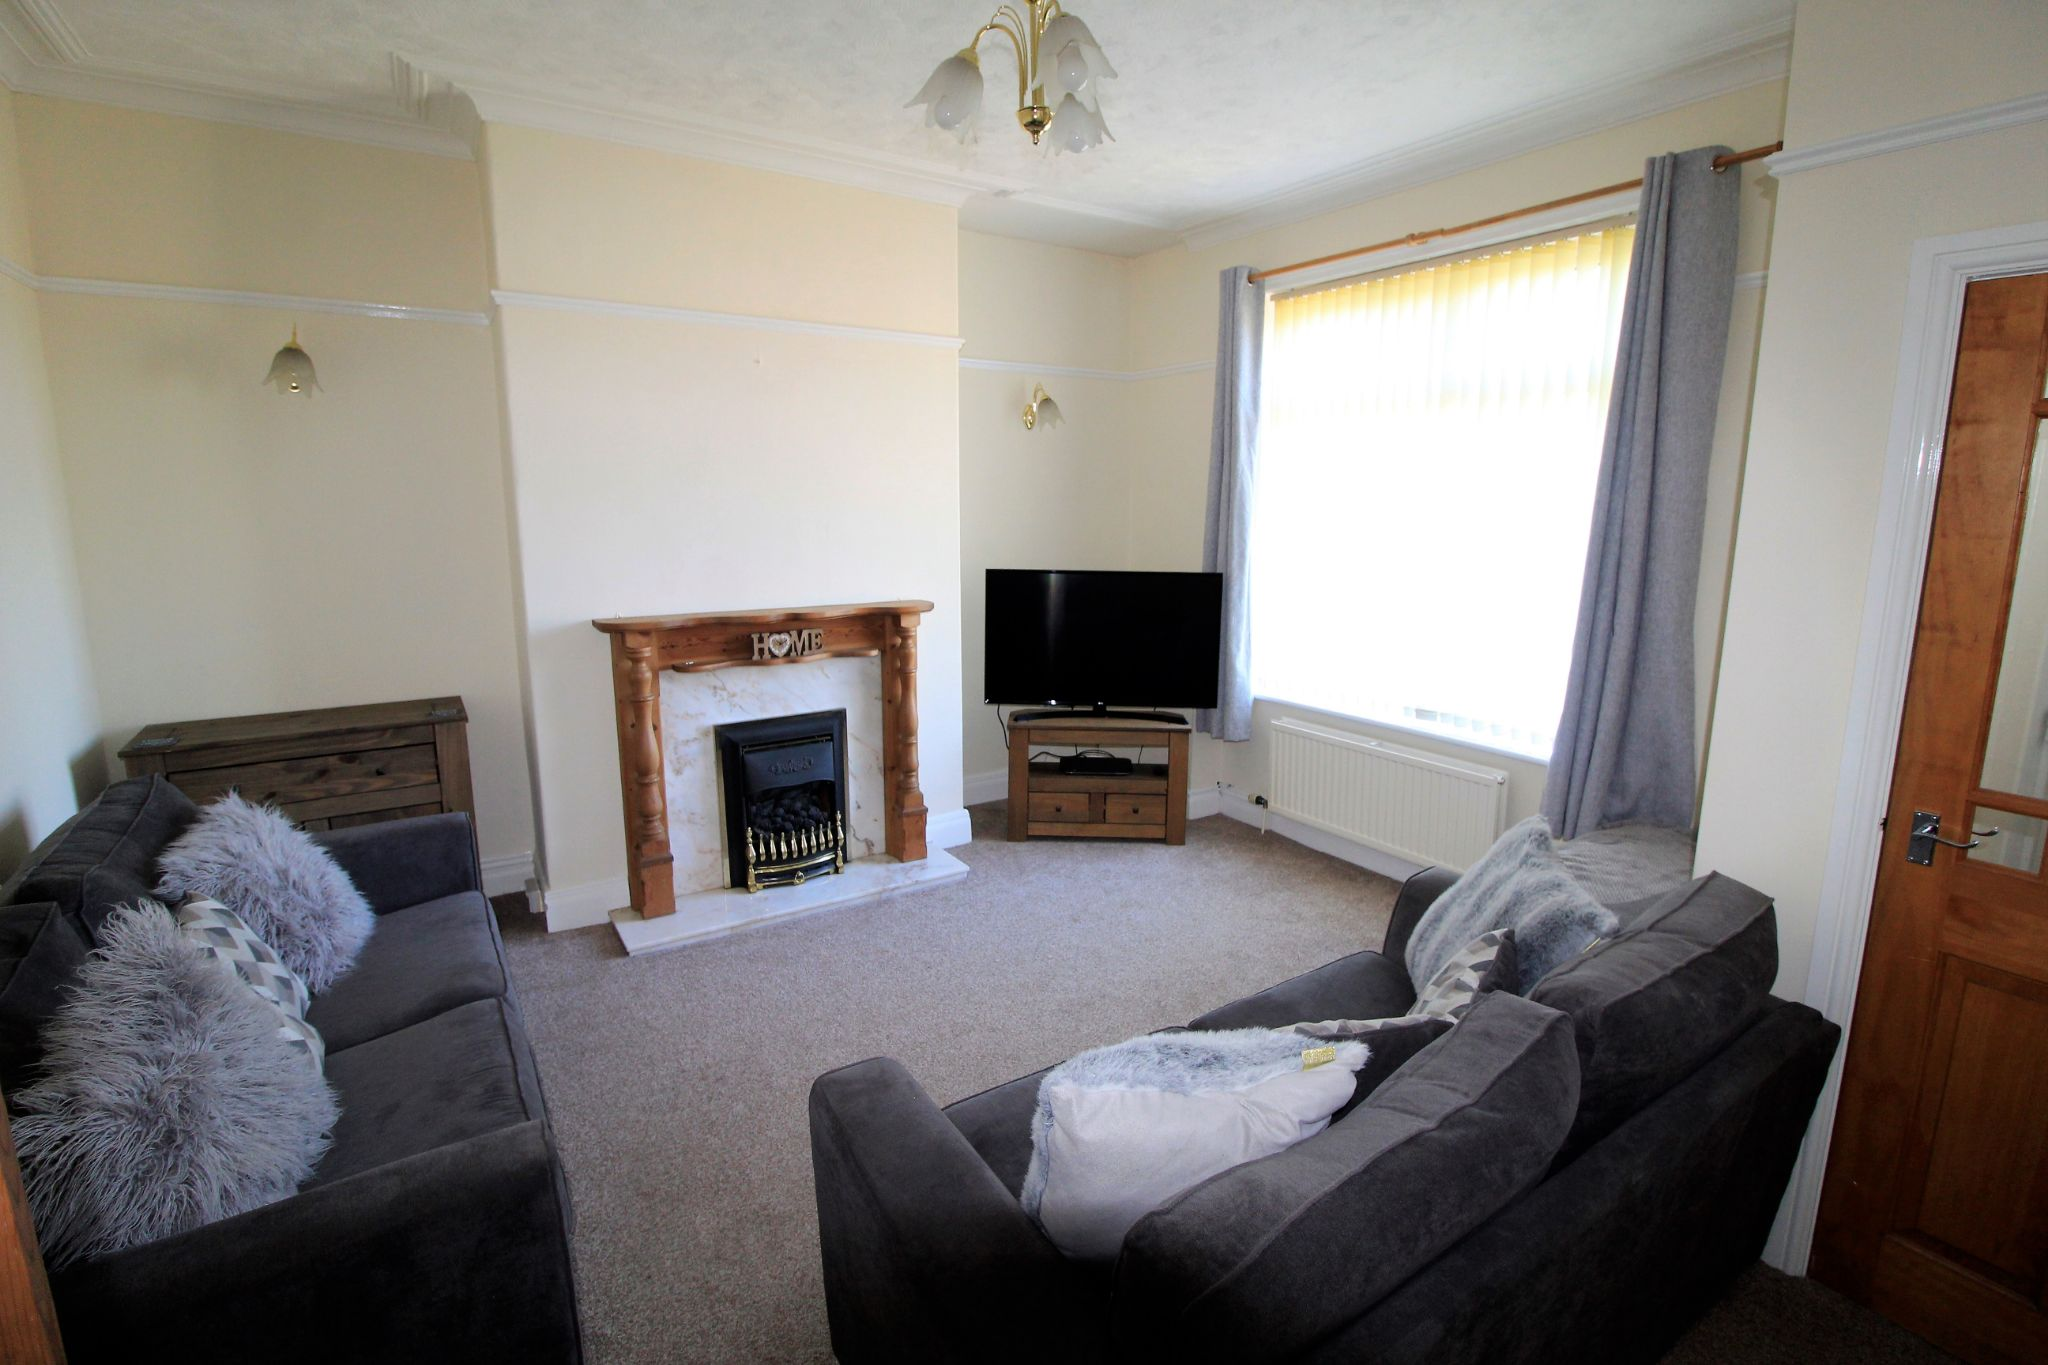 2 bedroom end terraced house SSTC in Brighouse - Photograph 3